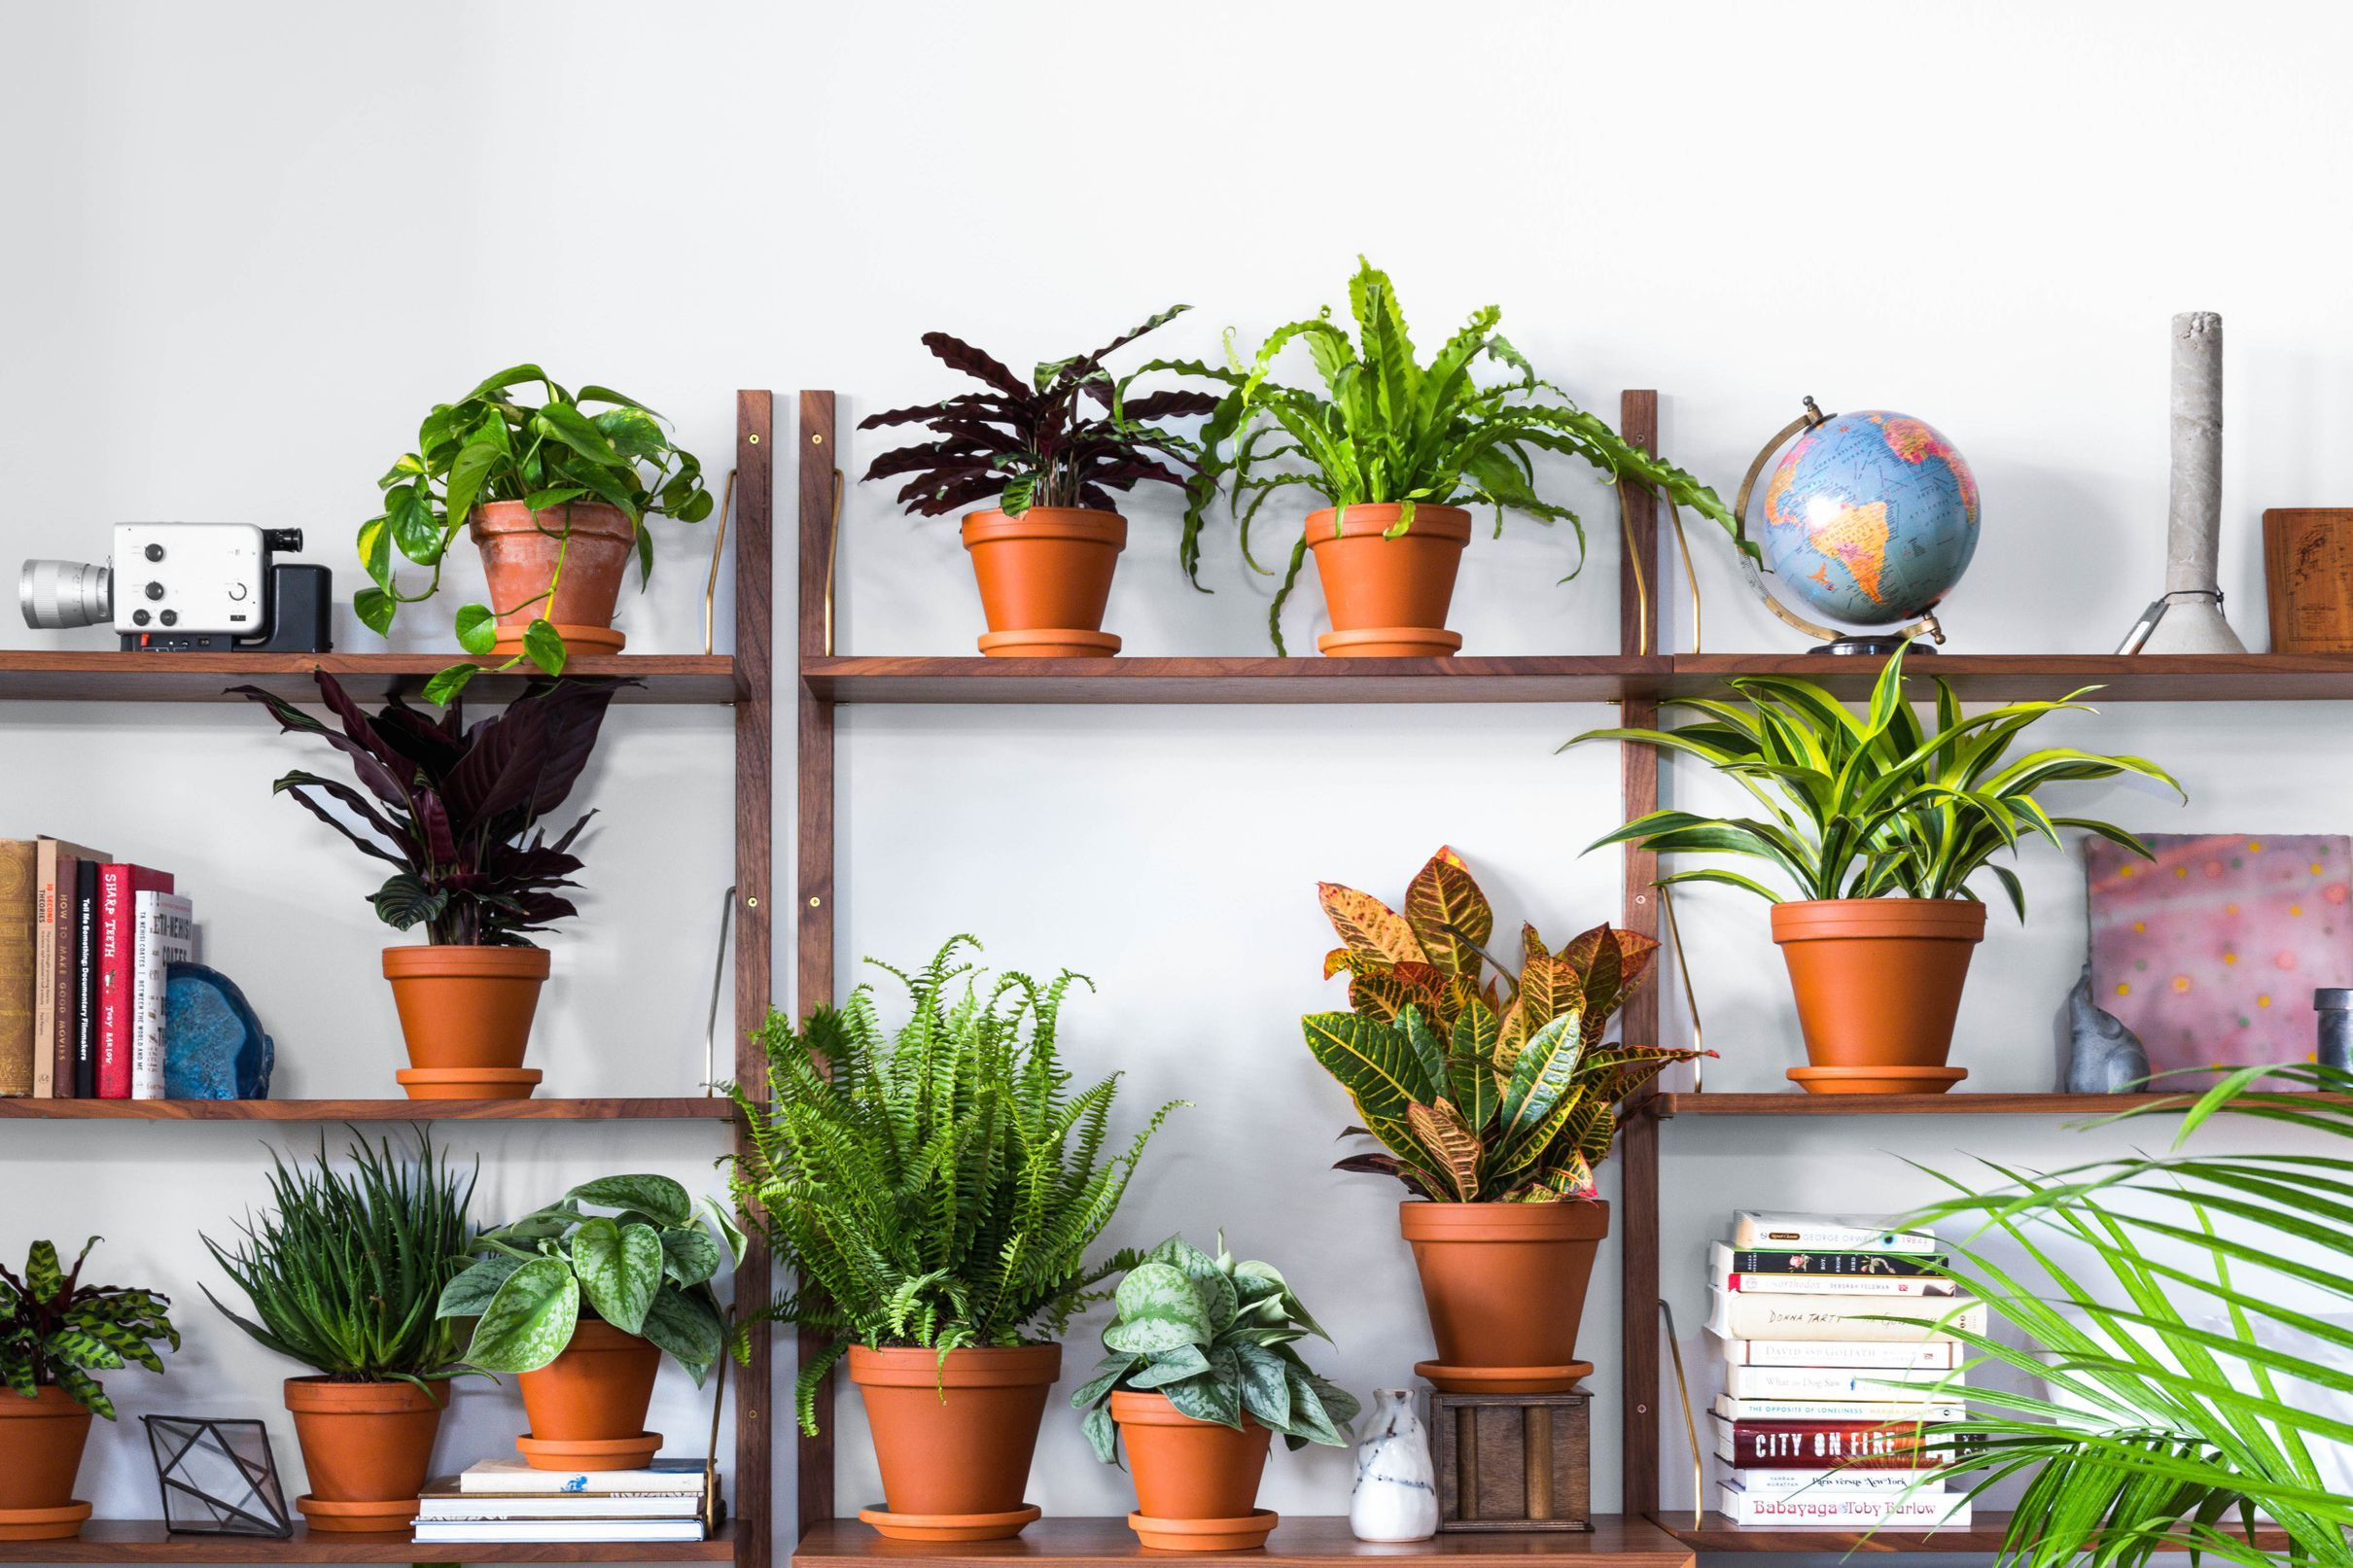 Where To Buy Indoor Plants Online Where To Buy Plants Online Home Design Plants Buy Plants